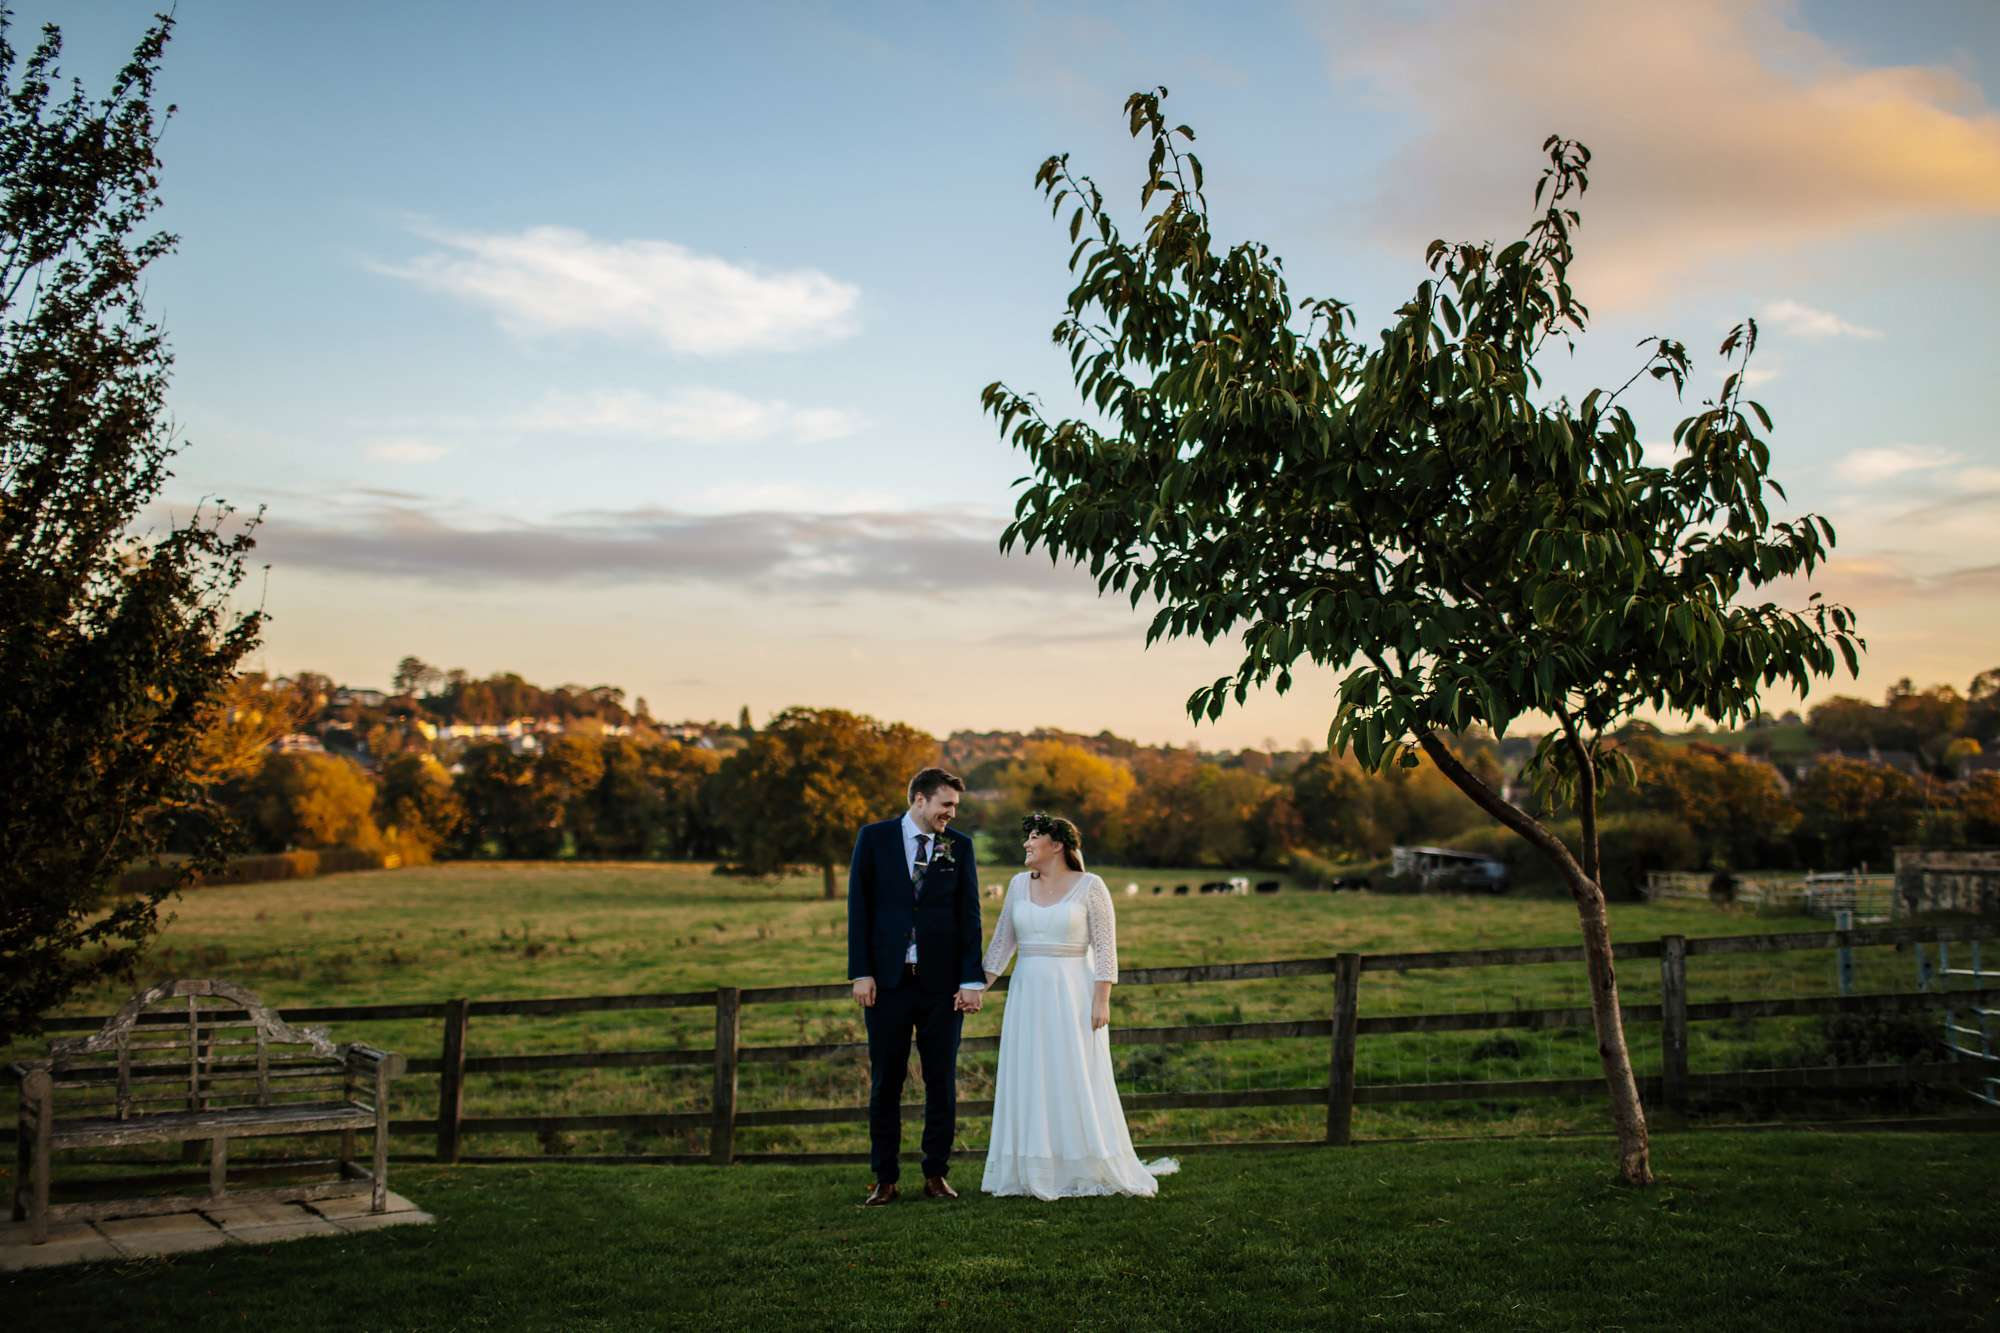 Sunset portrait of a bride and groom in Yorkshire